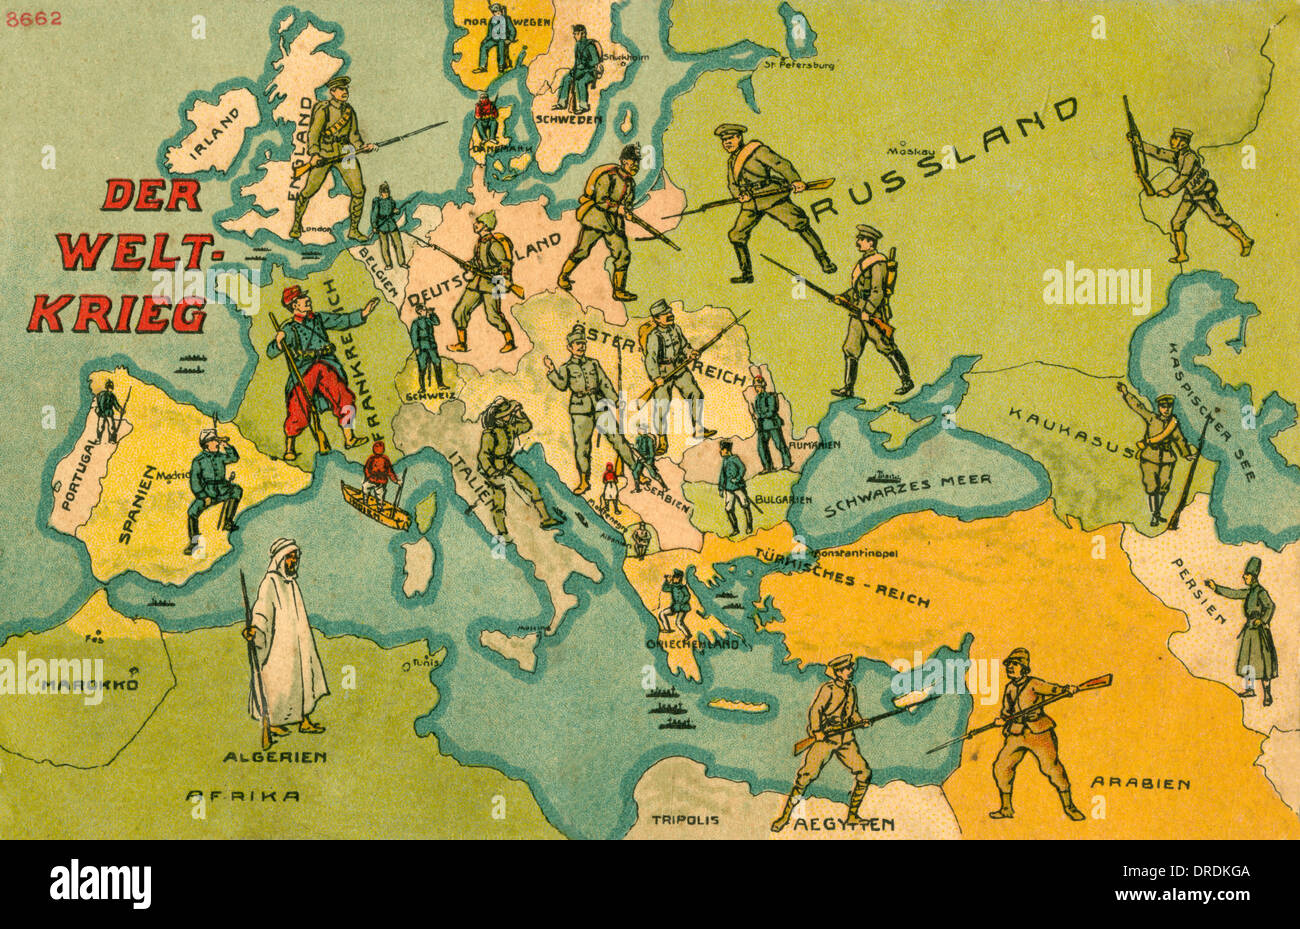 World war one combatants map of europe stock photo 66068922 alamy world war one combatants map of europe gumiabroncs Image collections